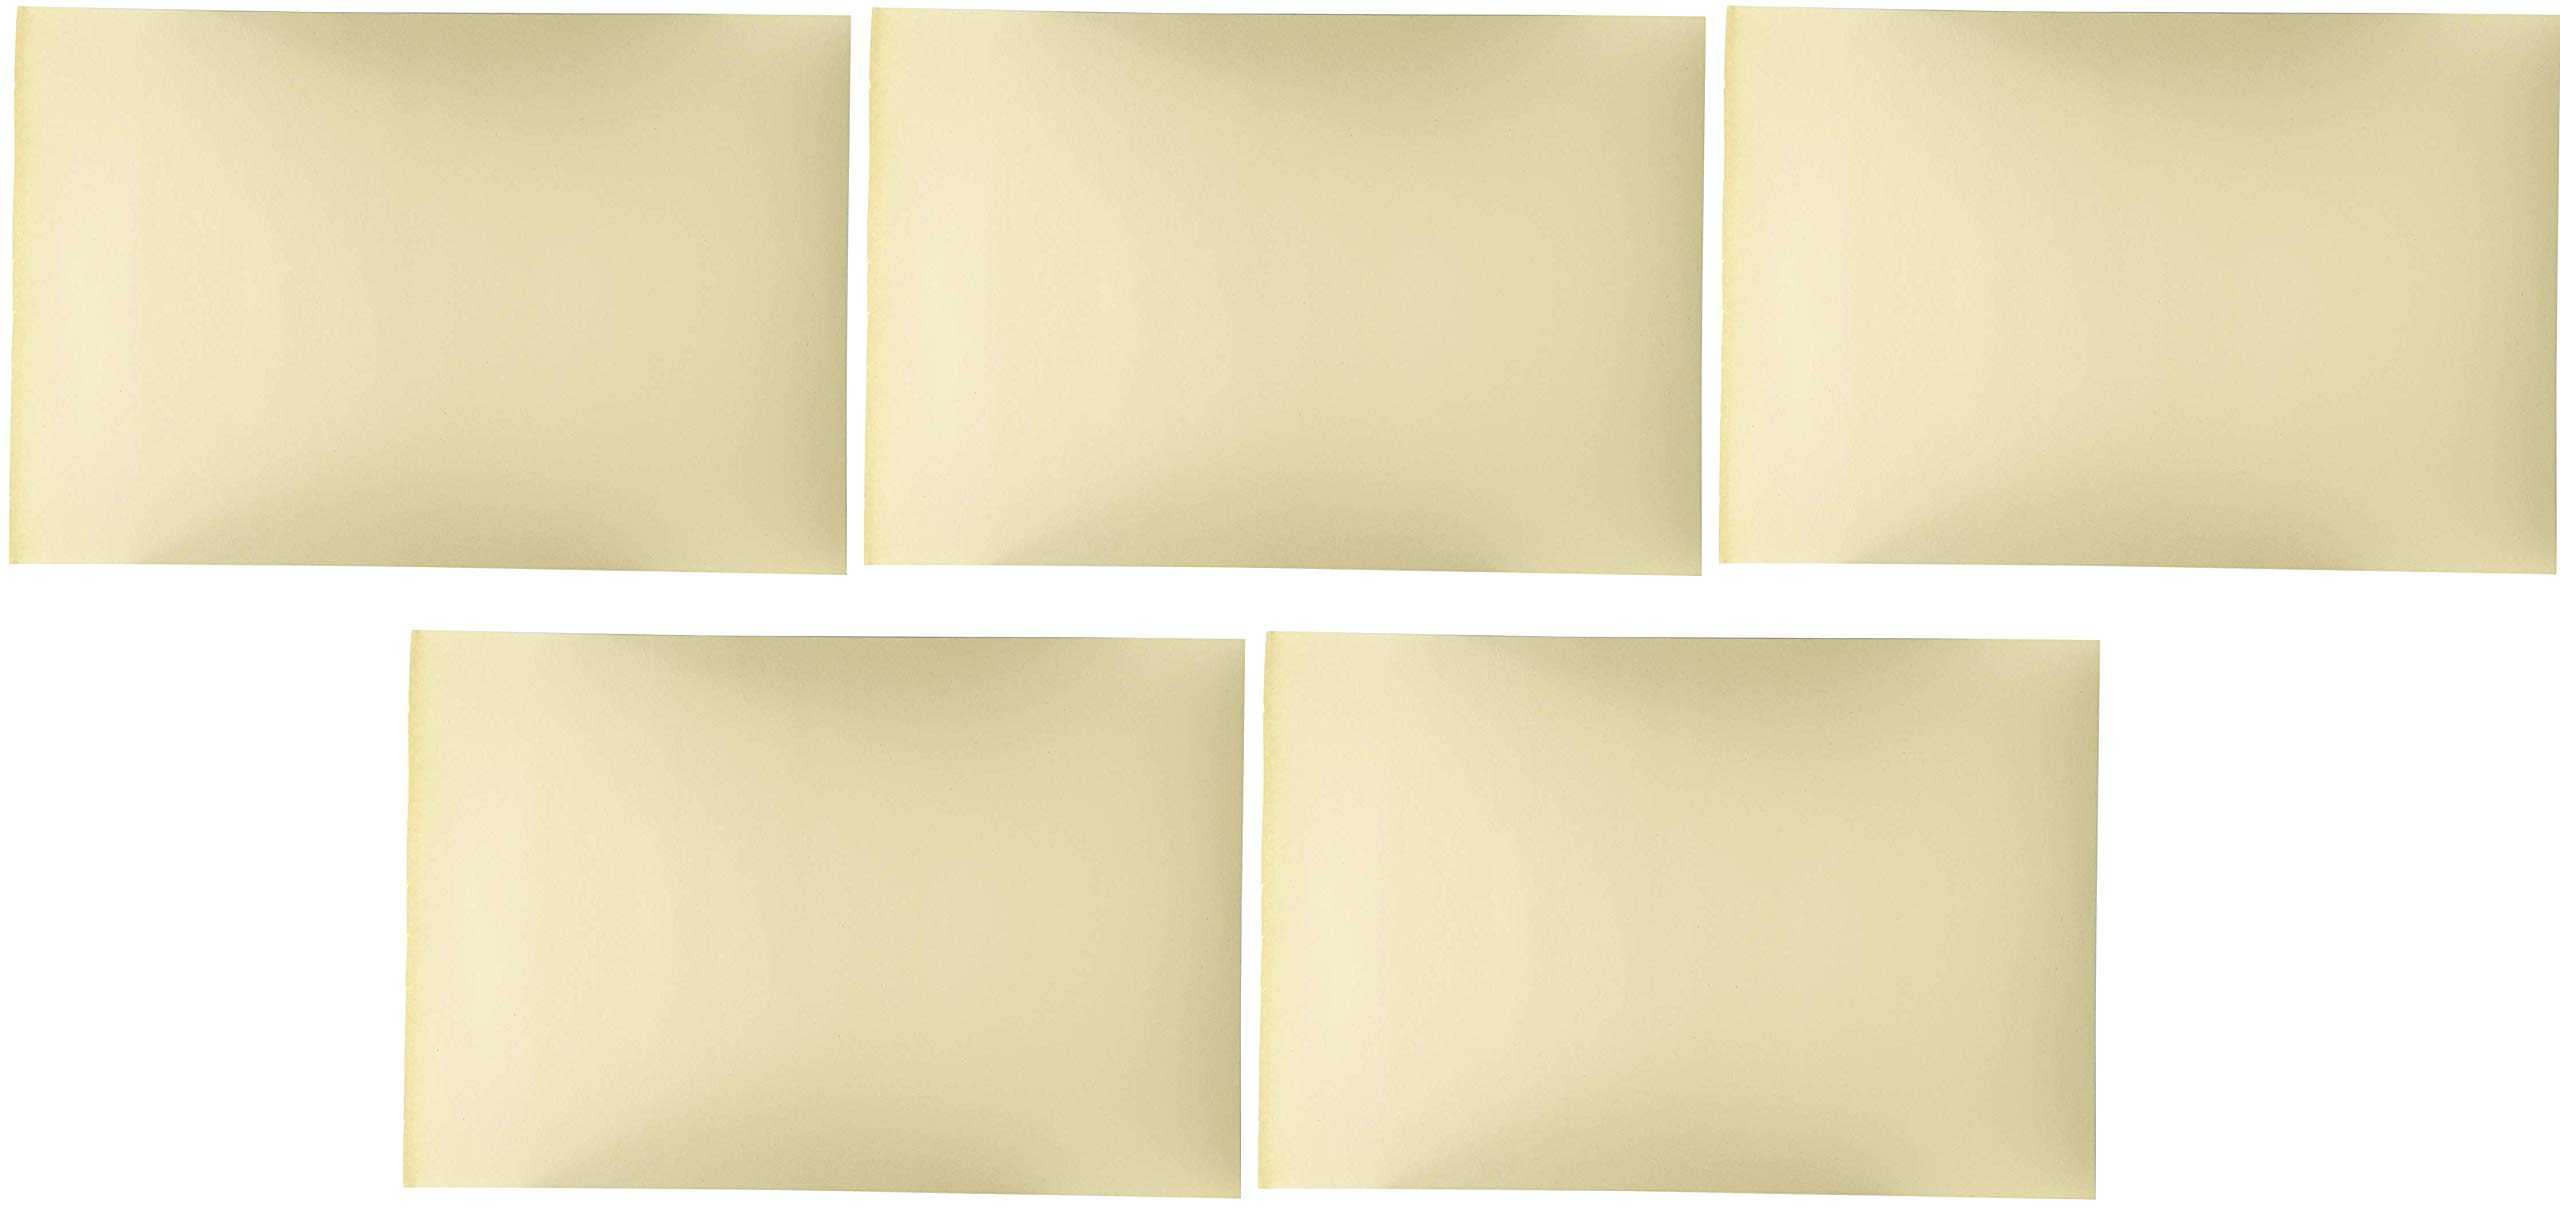 Sax Manila Drawing Paper, 40 lb, 12 x 18 Inches, Pack of 500 (Вundlе оf Fіvе)